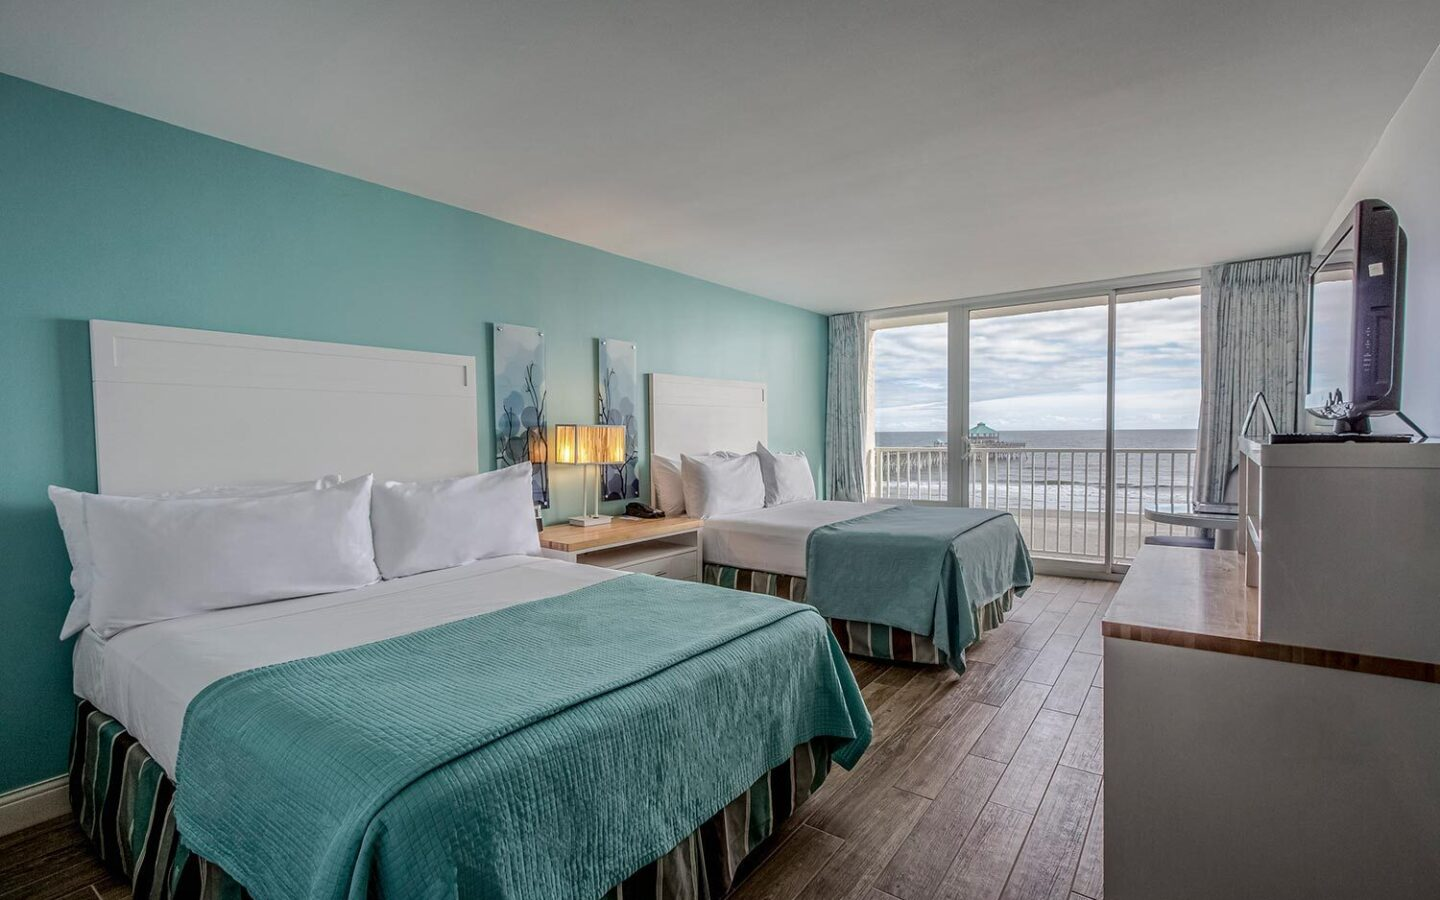 two queen double beds and side table with lamp overlooking beach front views